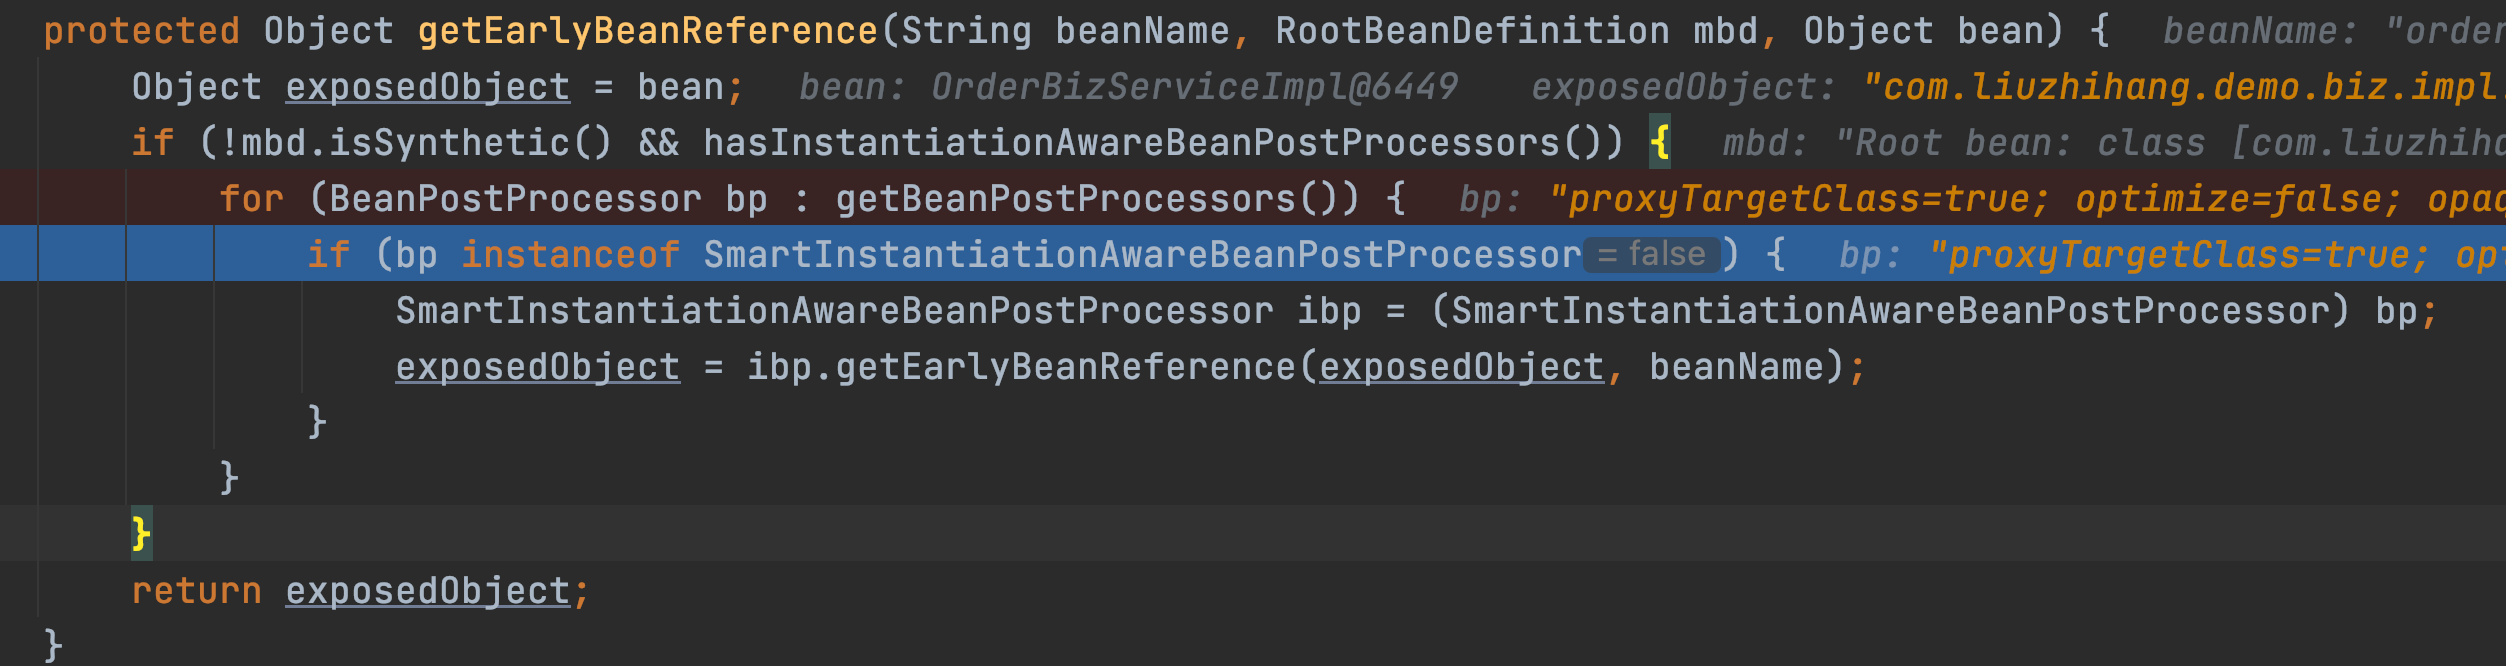 getEarlyBeanReference